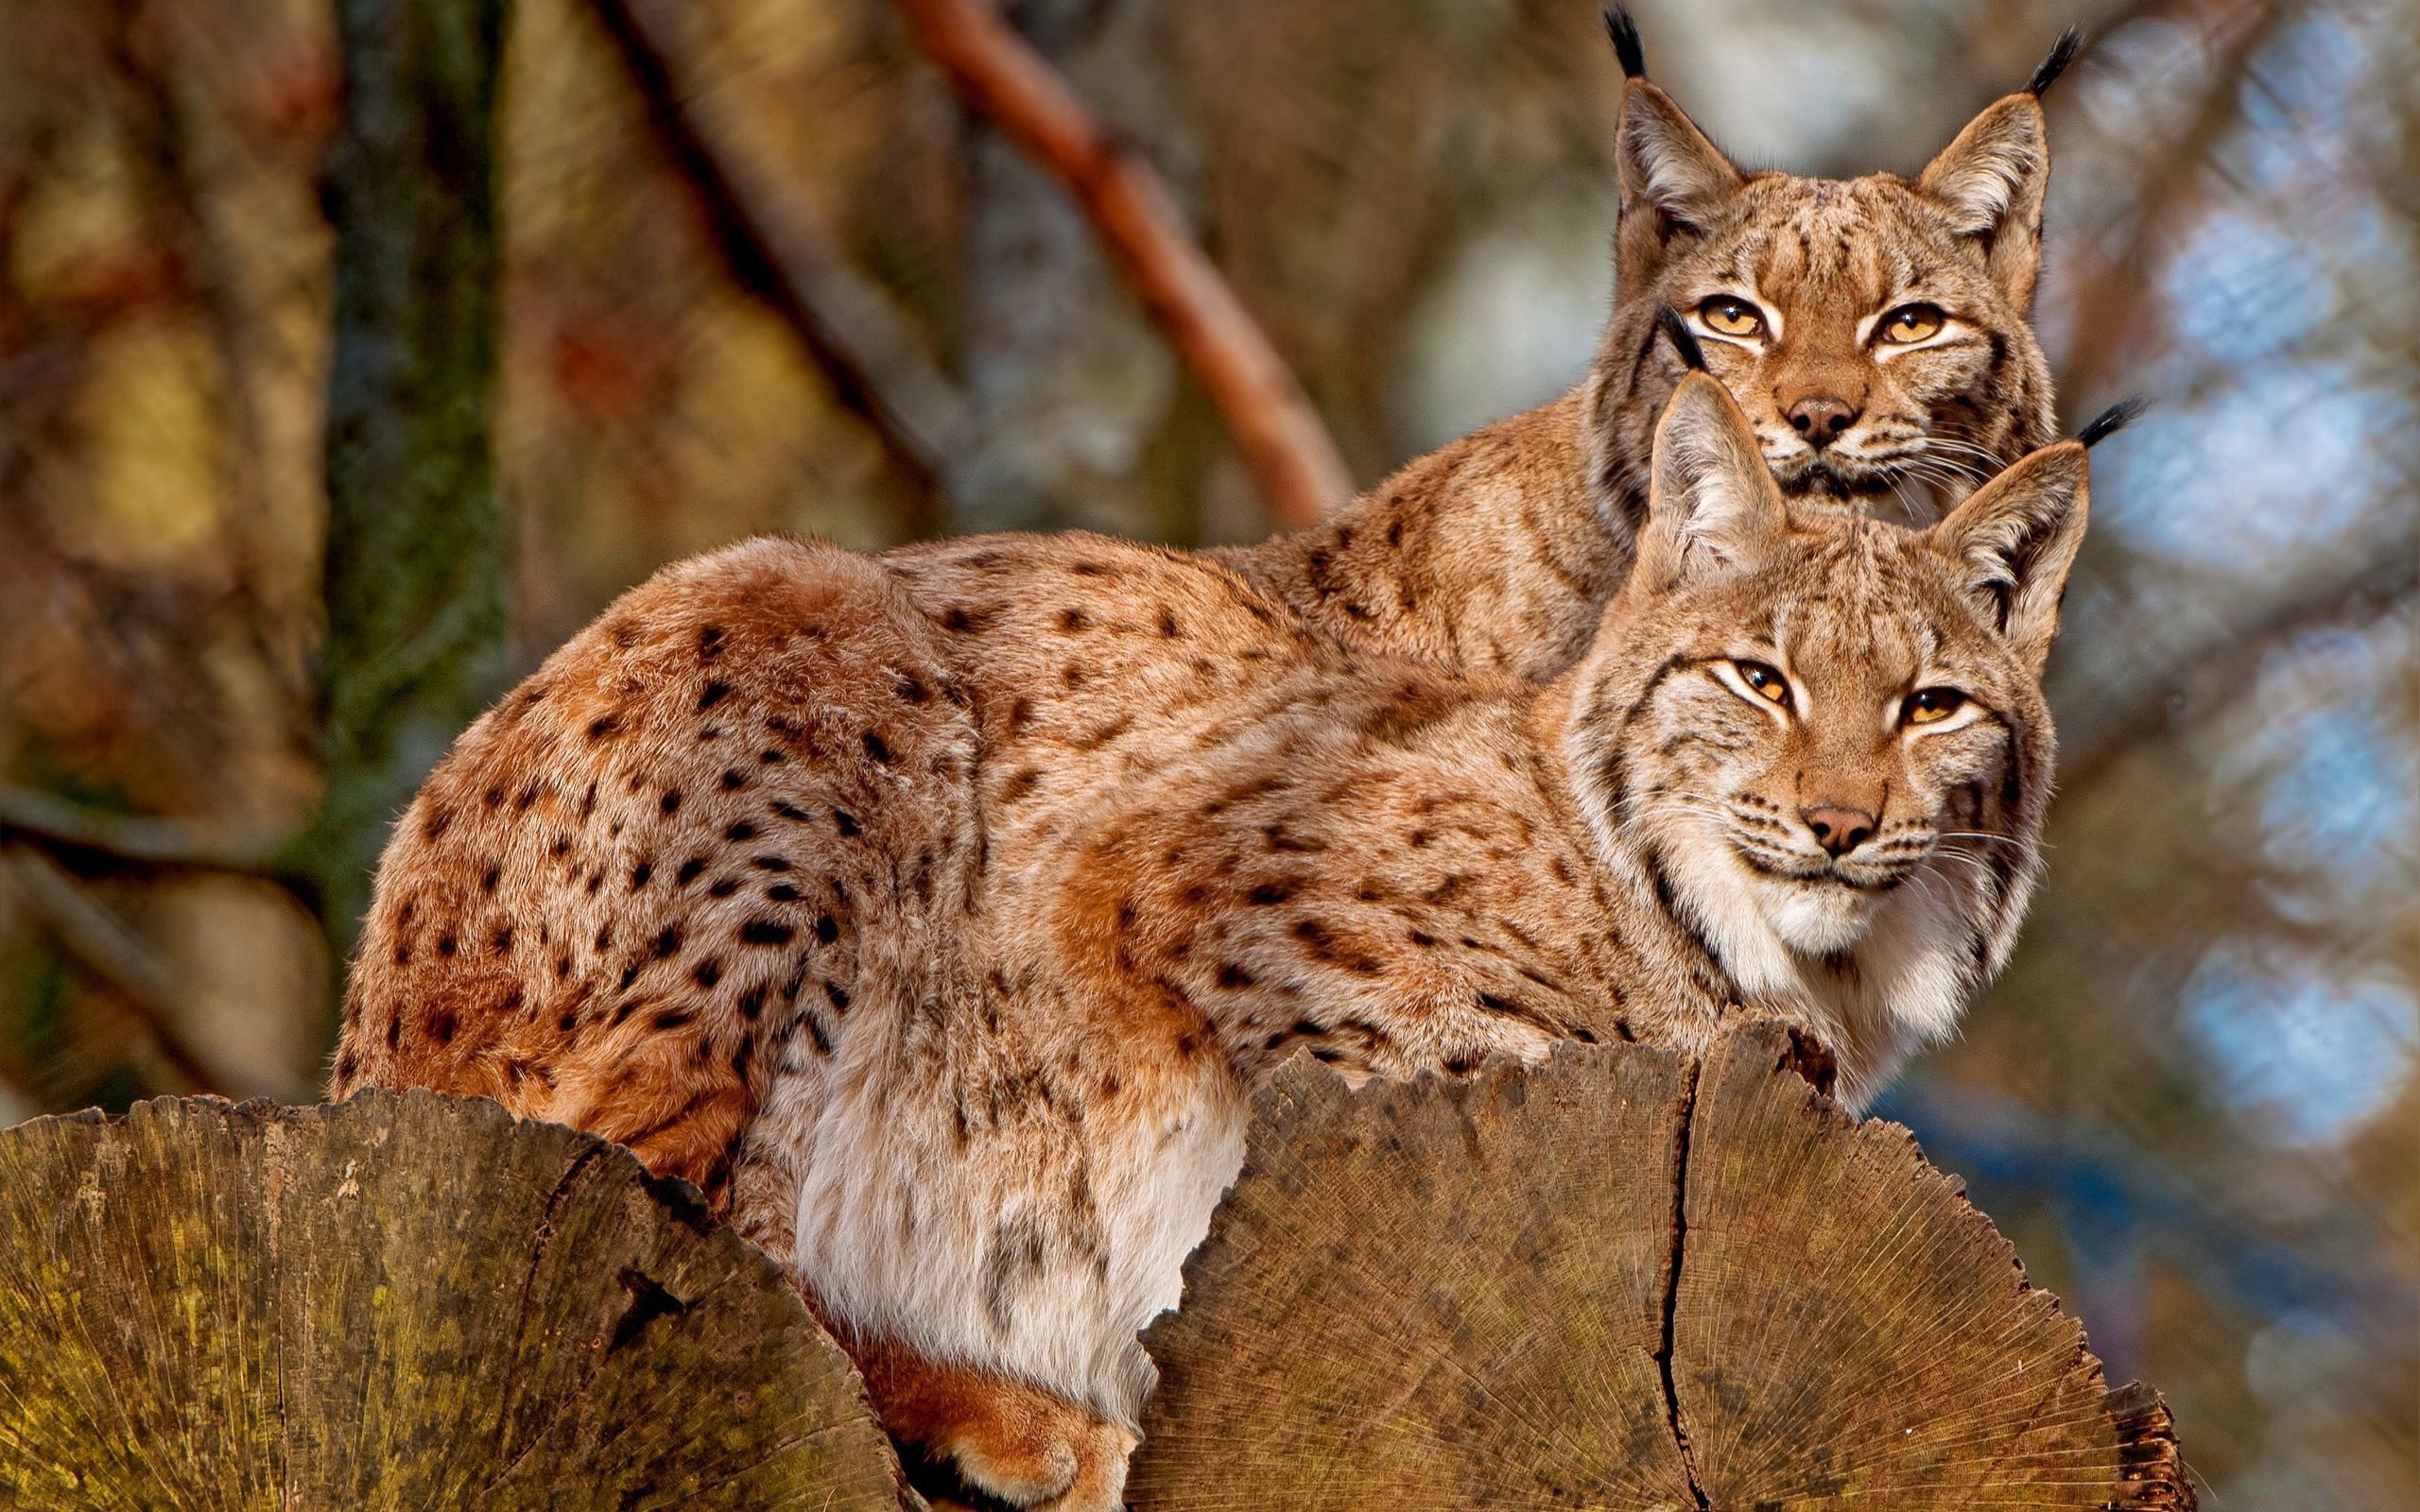 141913 download wallpaper Animals, Couple, Pair, Sit, Family, Bobcats screensavers and pictures for free